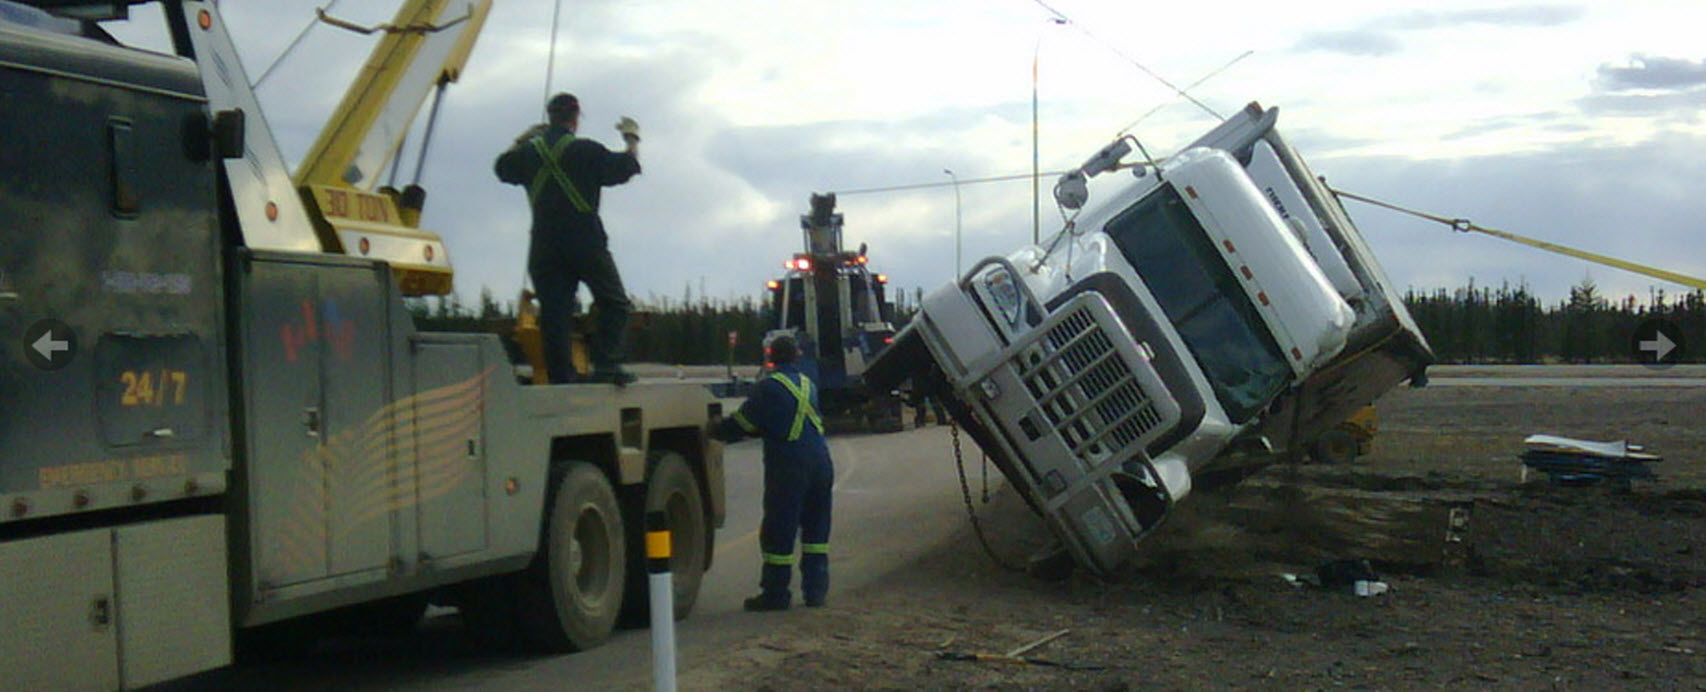 A-1 Equipment Hauling & Towing in Fort McMurray: Safety First for Heavy Equipment Recovery